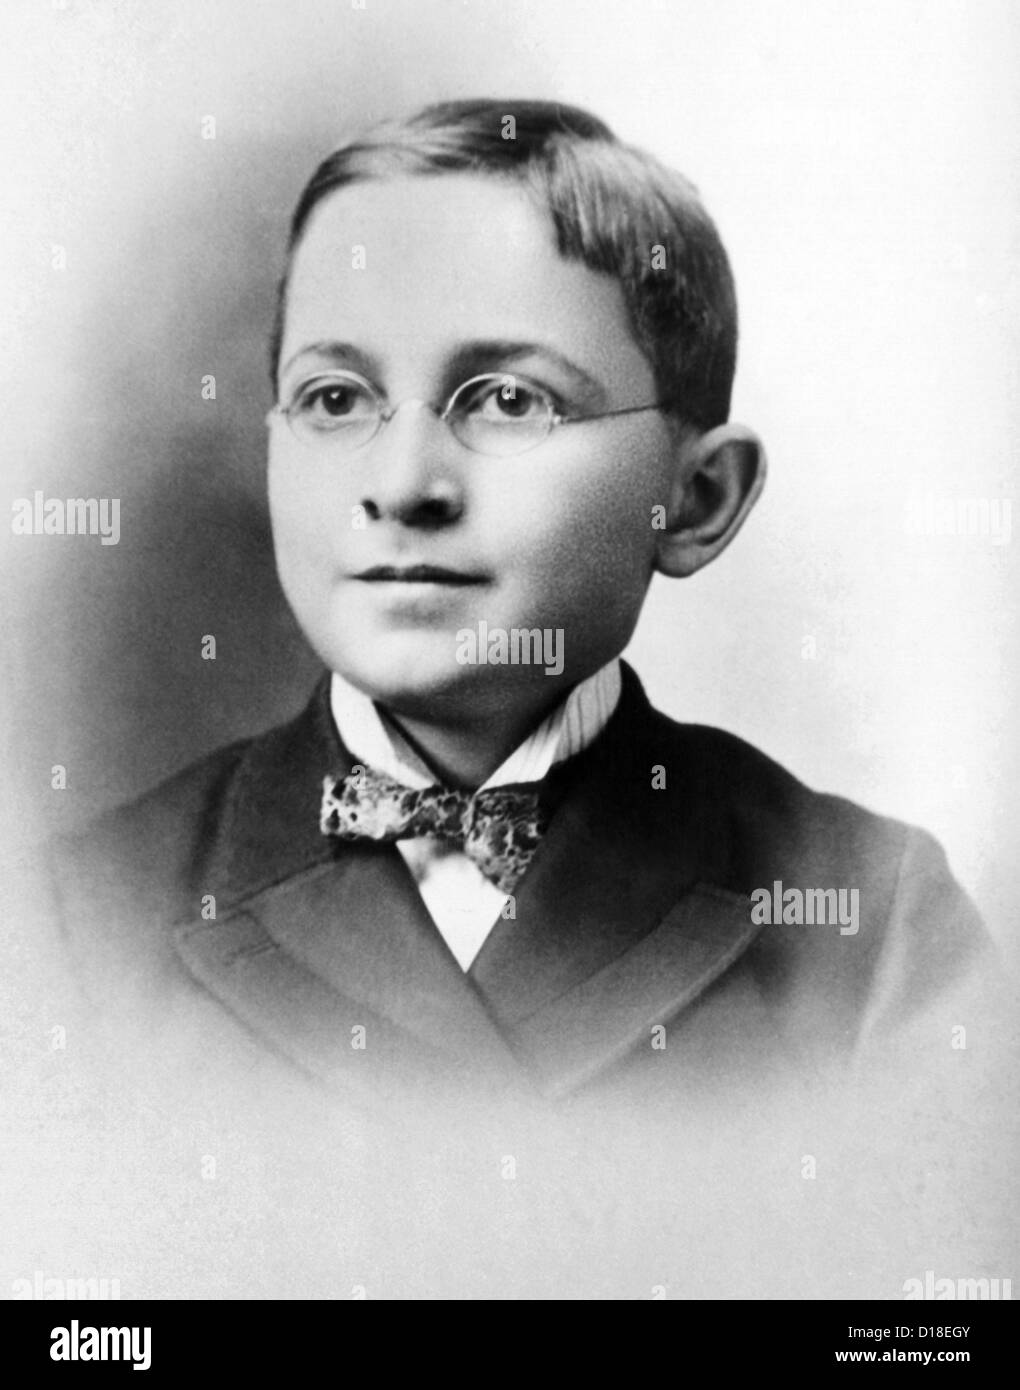 Harry Truman como un colegial. Ca. 1892. (CSU_ALPHA_194) Archivos CSU/Everett Collection Imagen De Stock